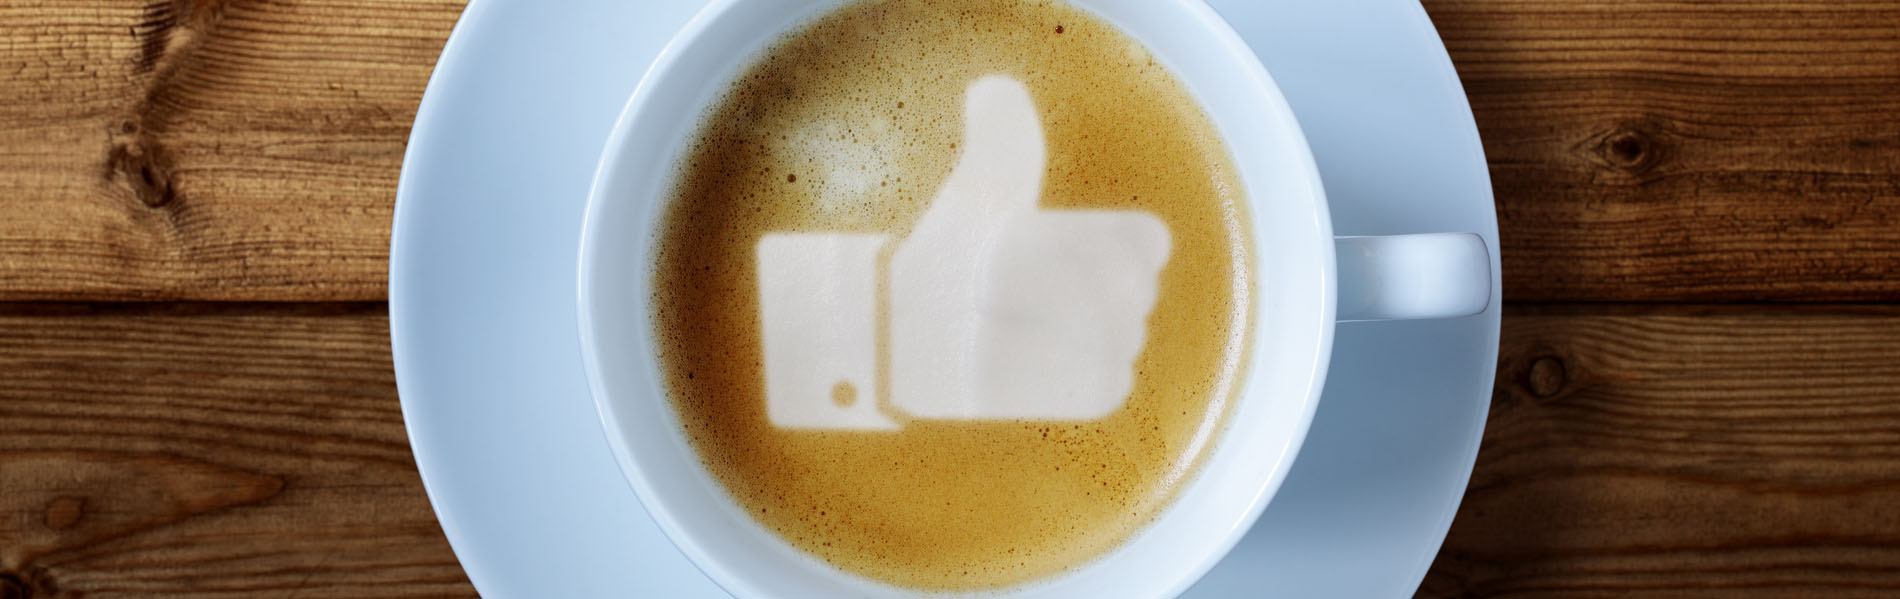 15 Great Ways To Increase Your Facebook Likes And Engagement